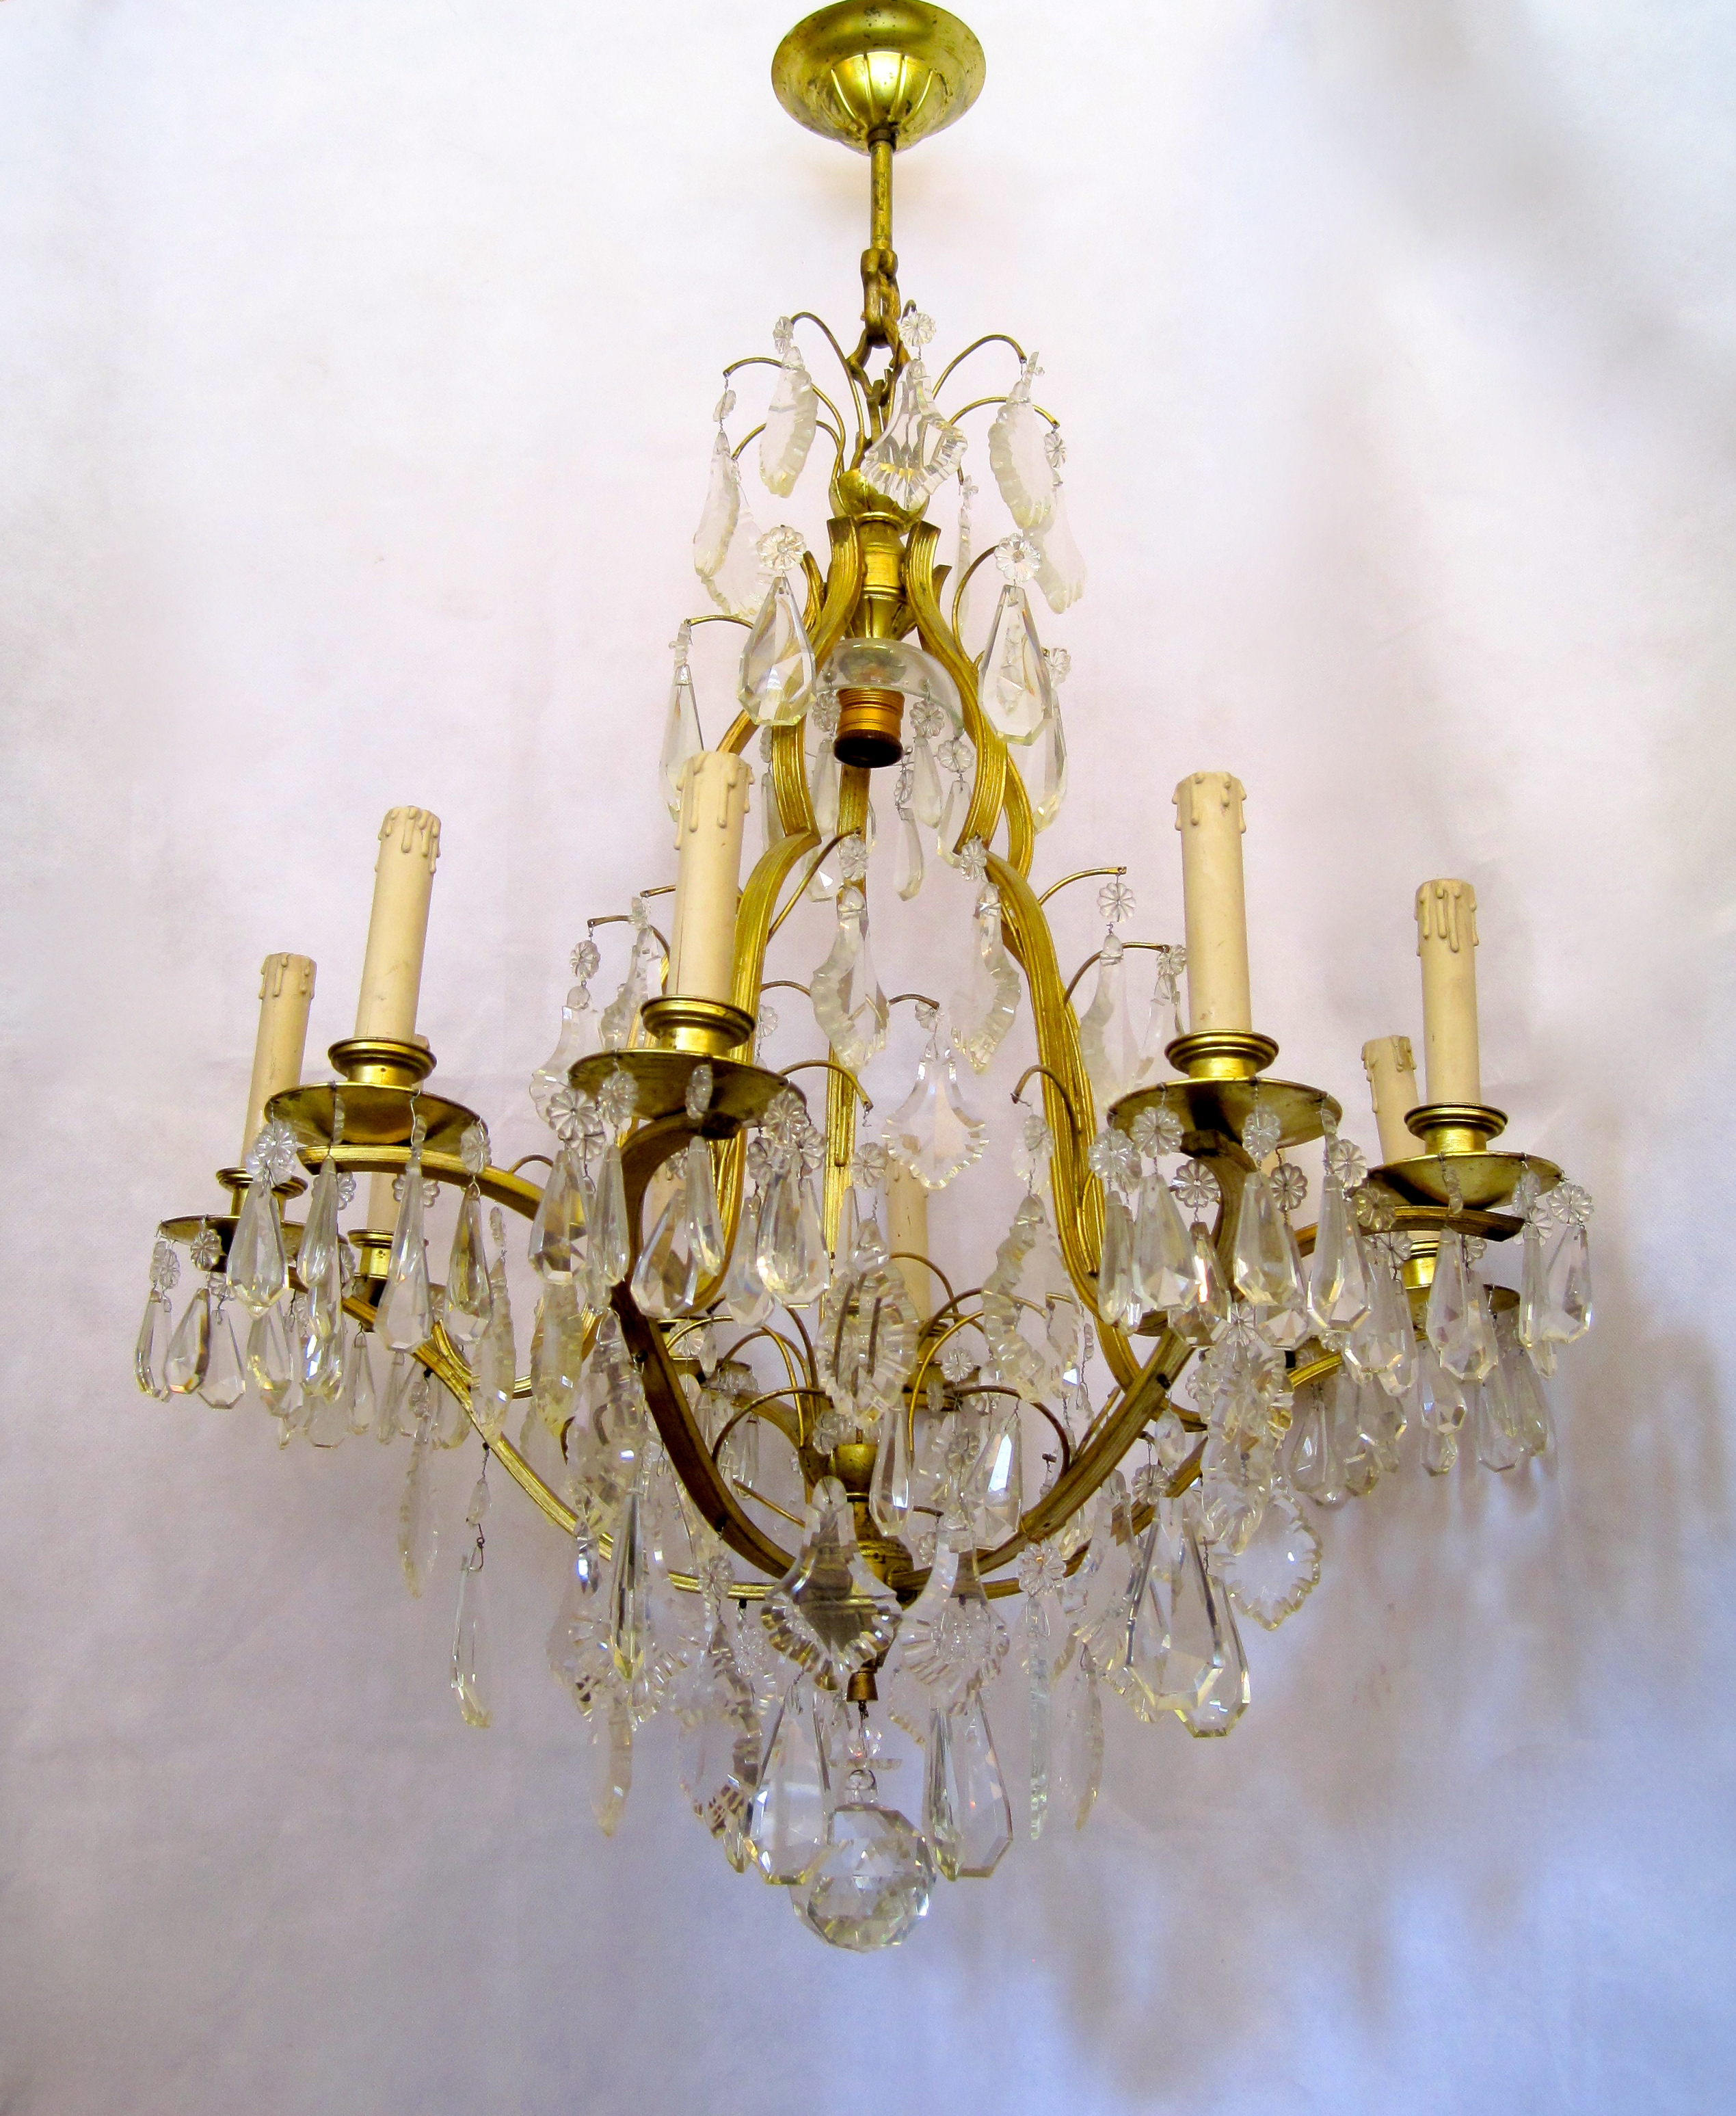 French crystal chandelier early 1920s retouch lighting chandelier early 1920s light arubaitofo Image collections